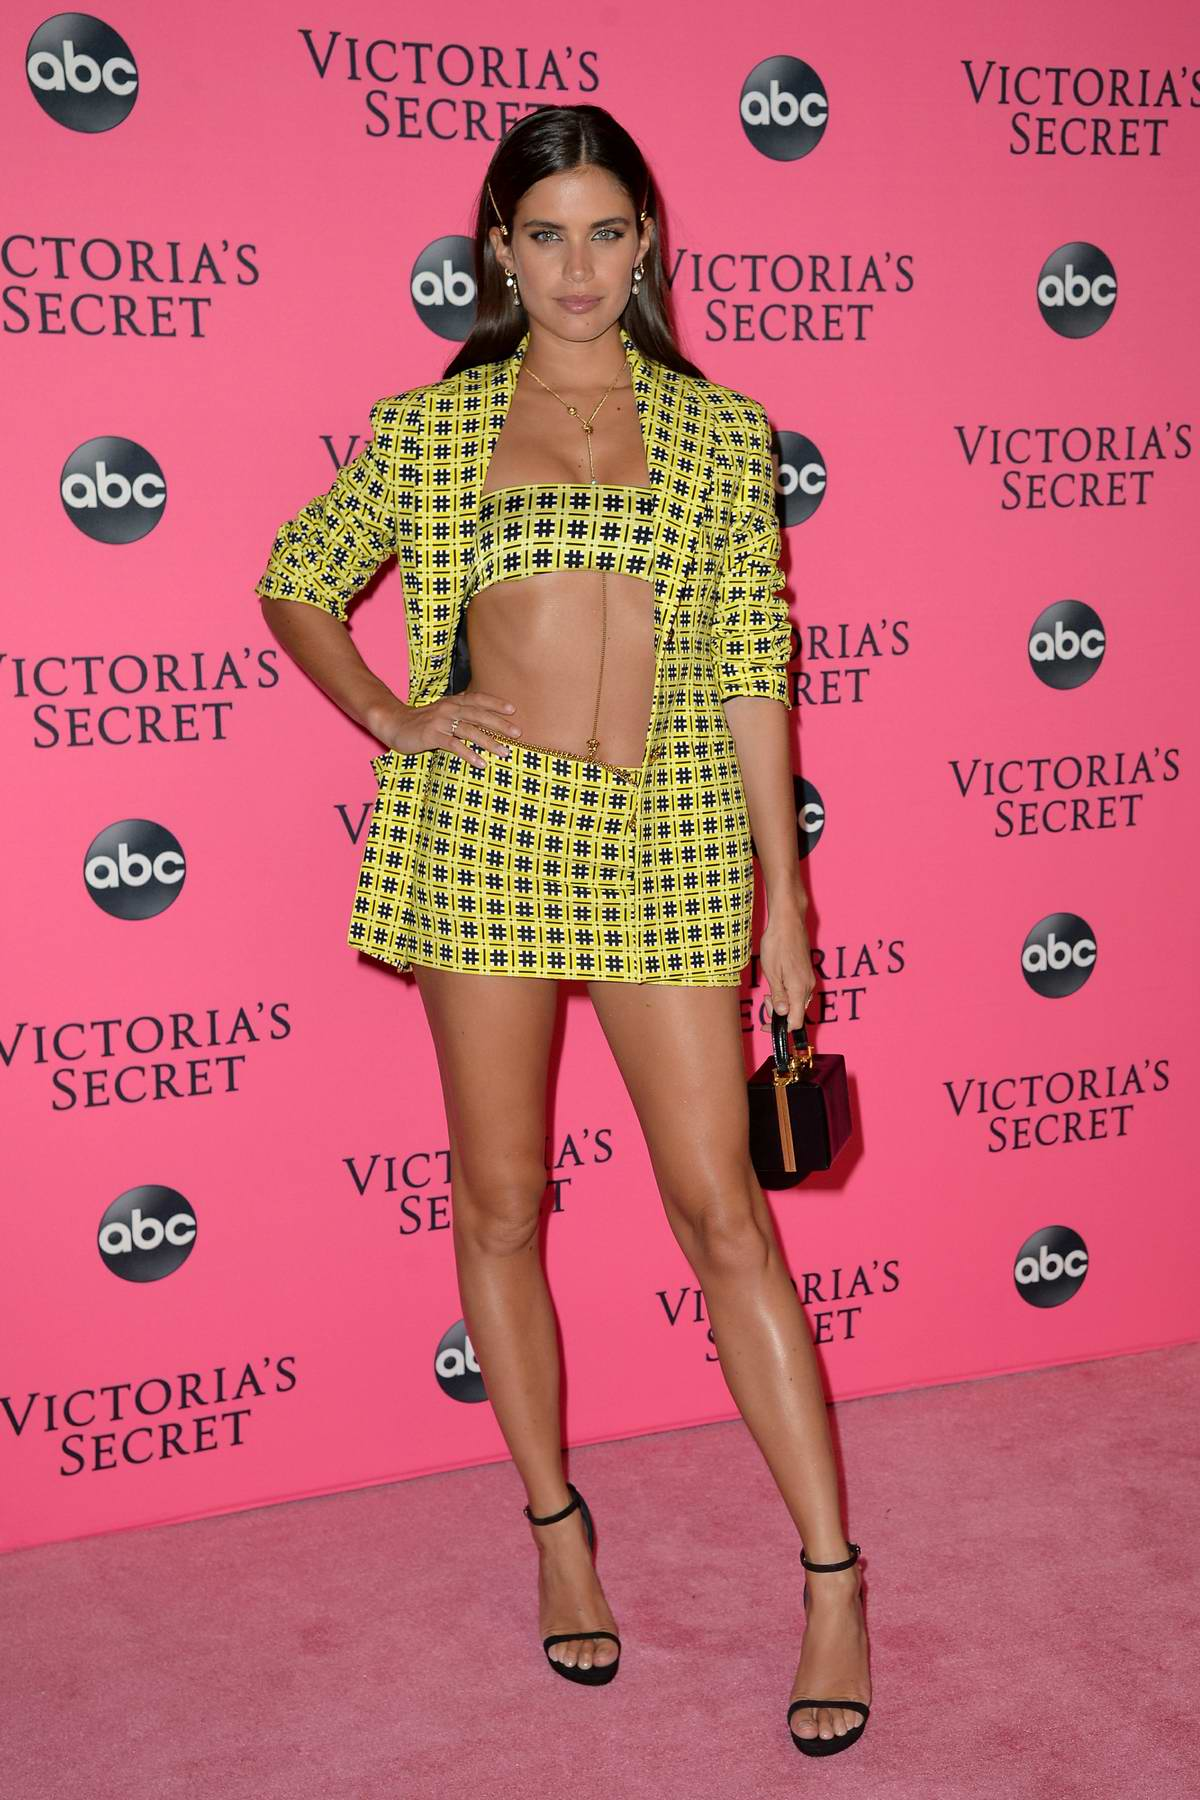 Sara Sampaio attends the 2018 Victoria's Secret Fashion Show Viewing Party at Spring Studios in New York City